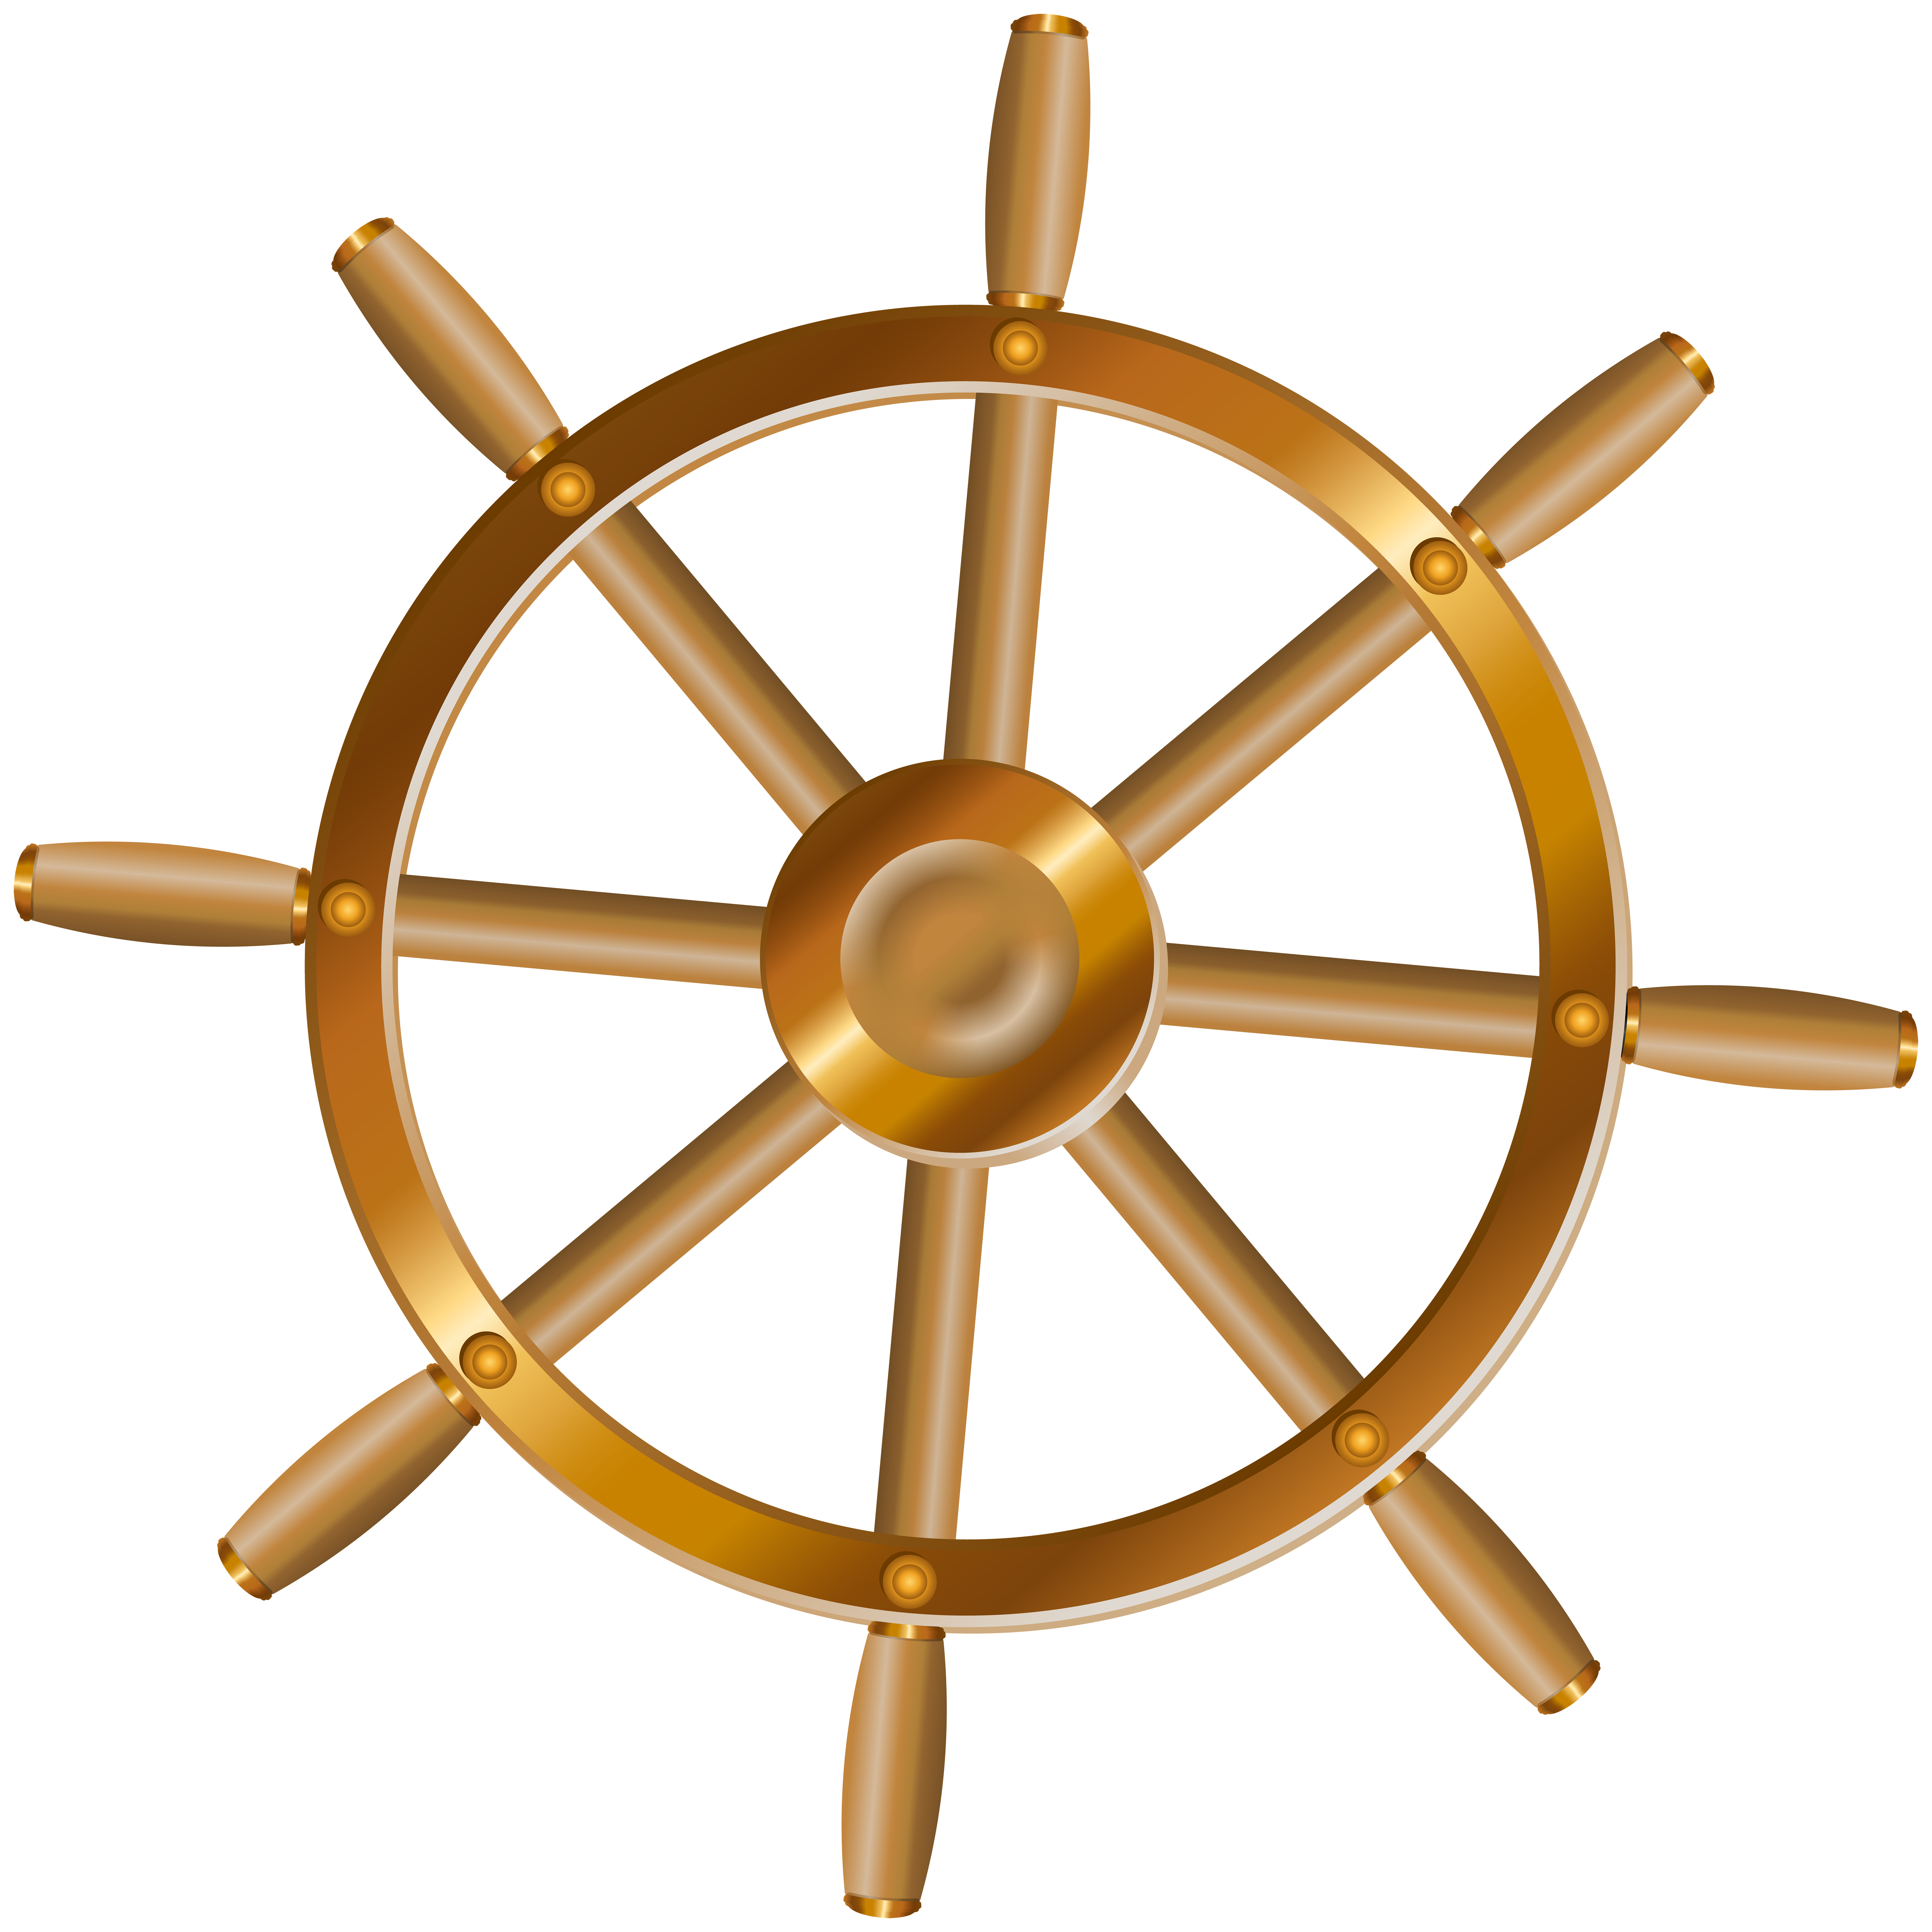 Clipart anchor wheel. Ship s steering clip